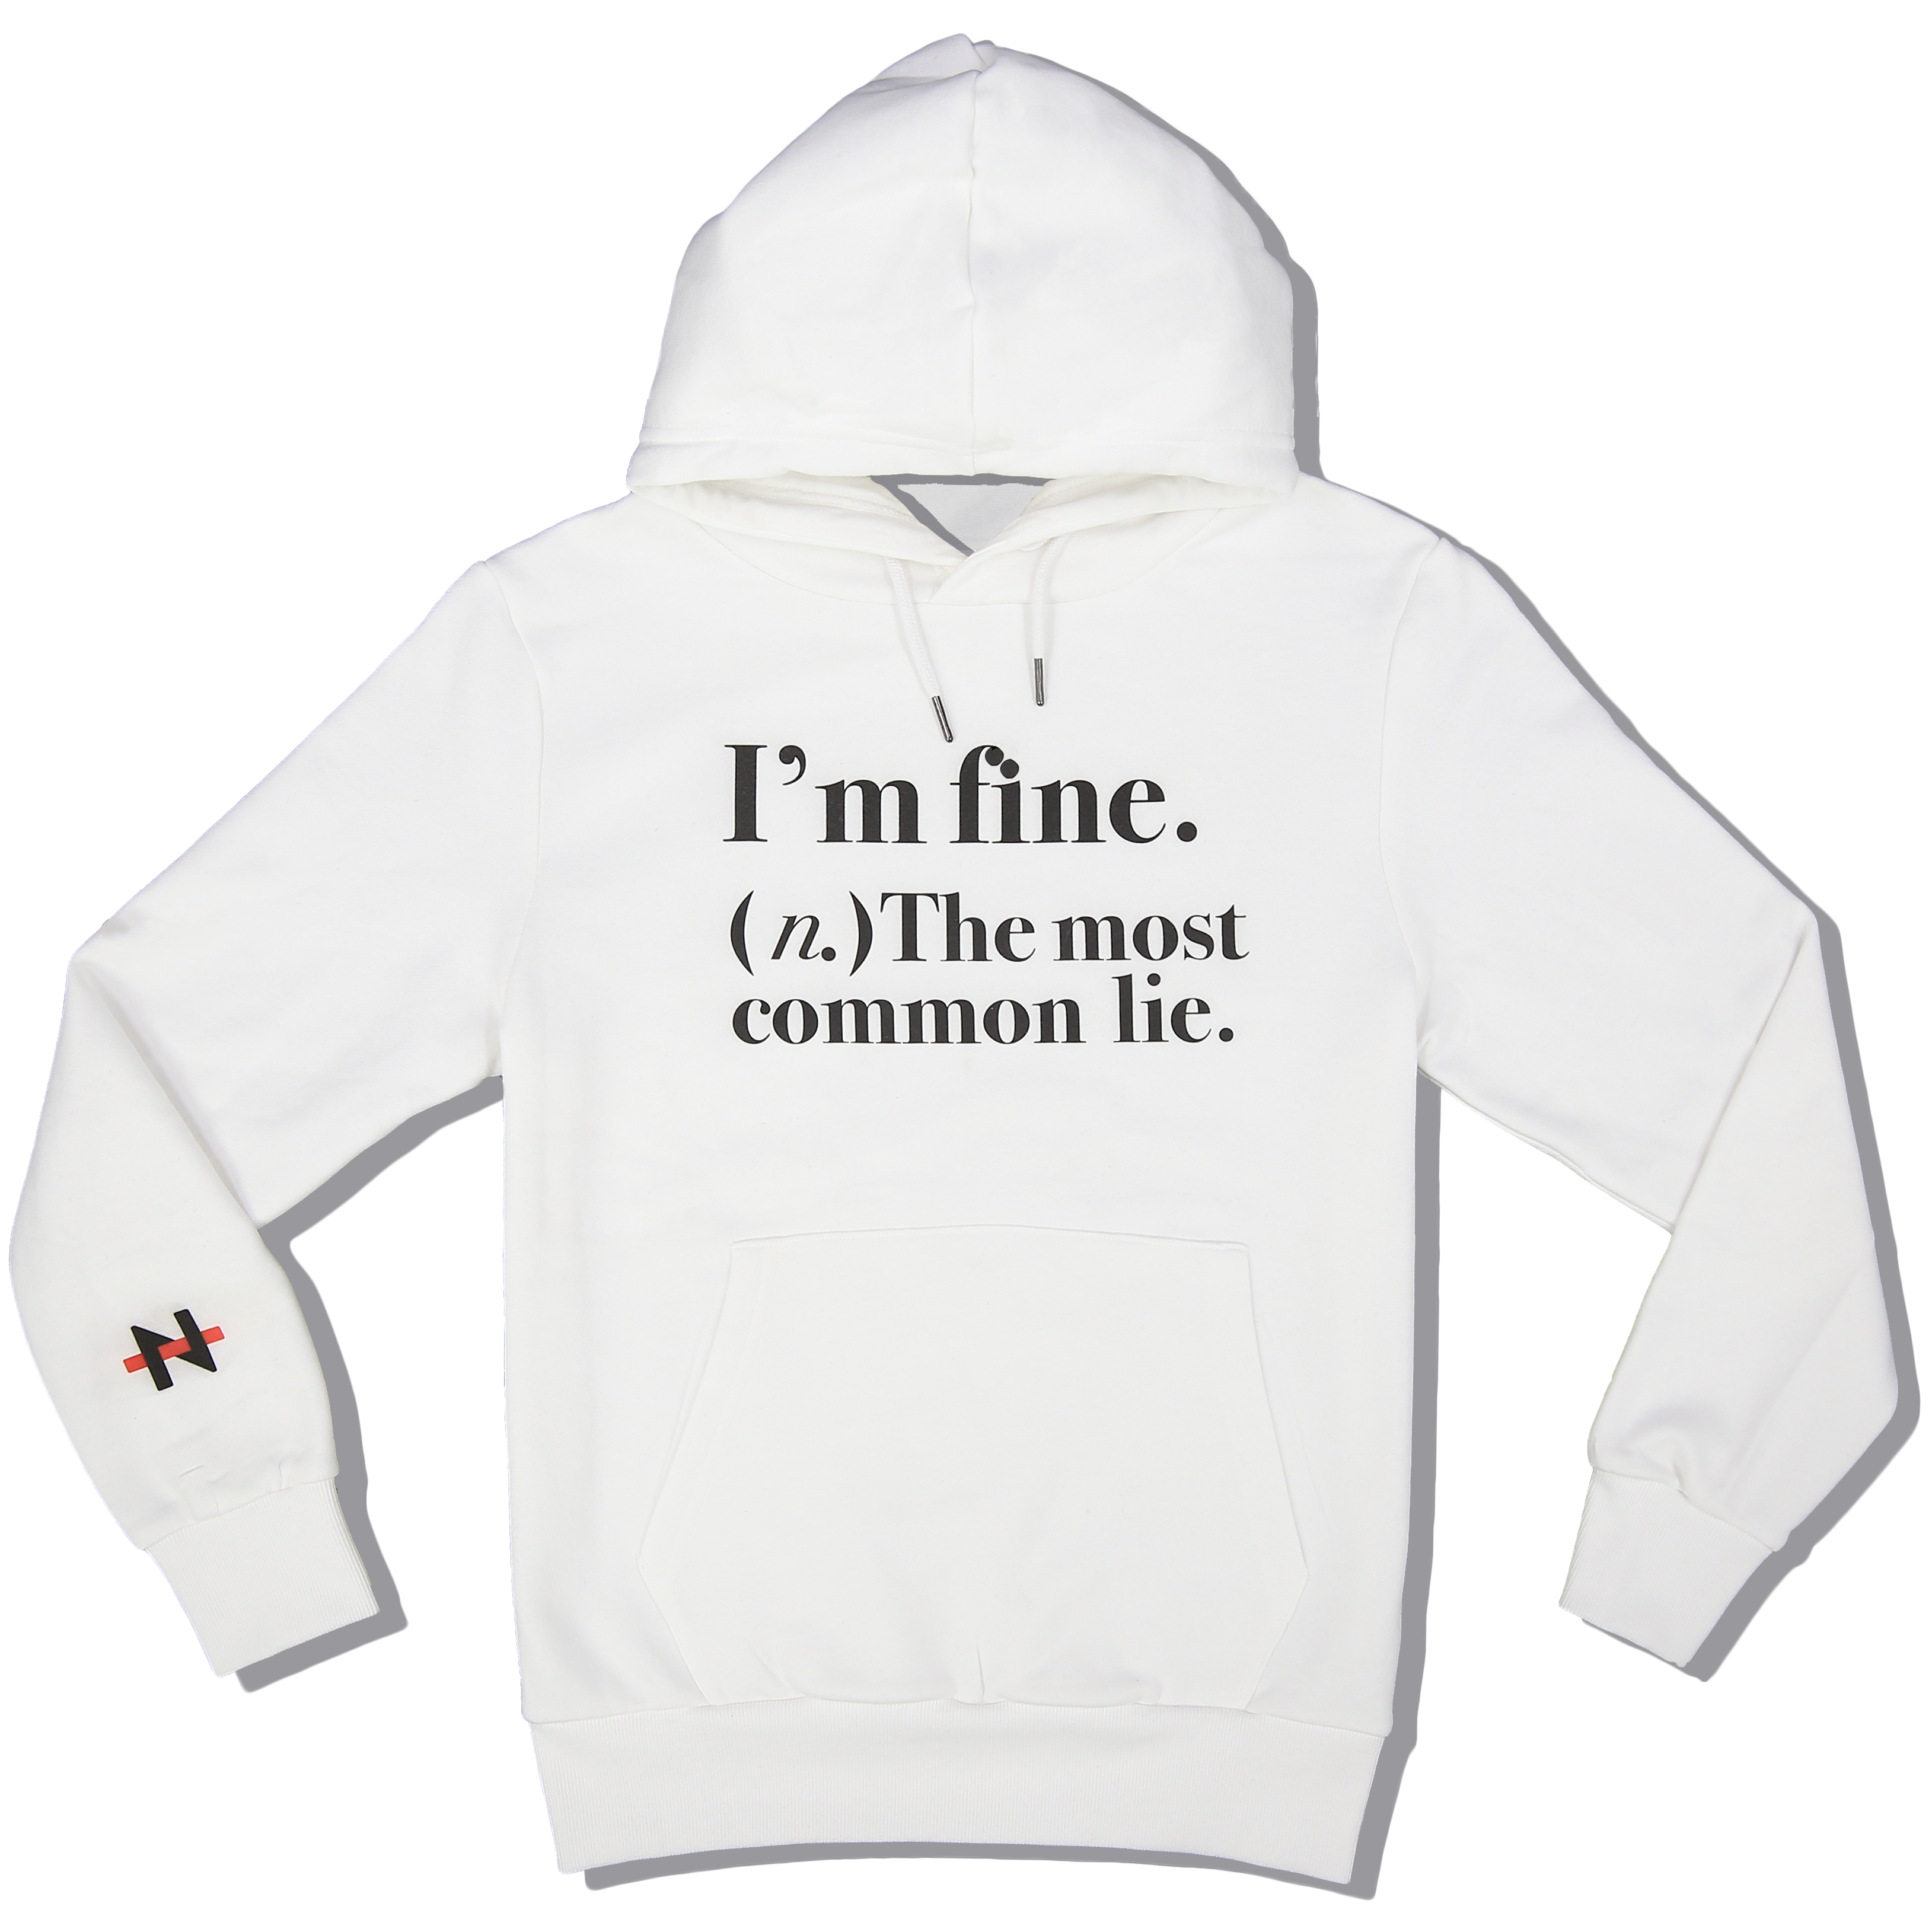 new arrive speical offer in stock NSFW I'm Fine Hoodie – 9GAG SHOP